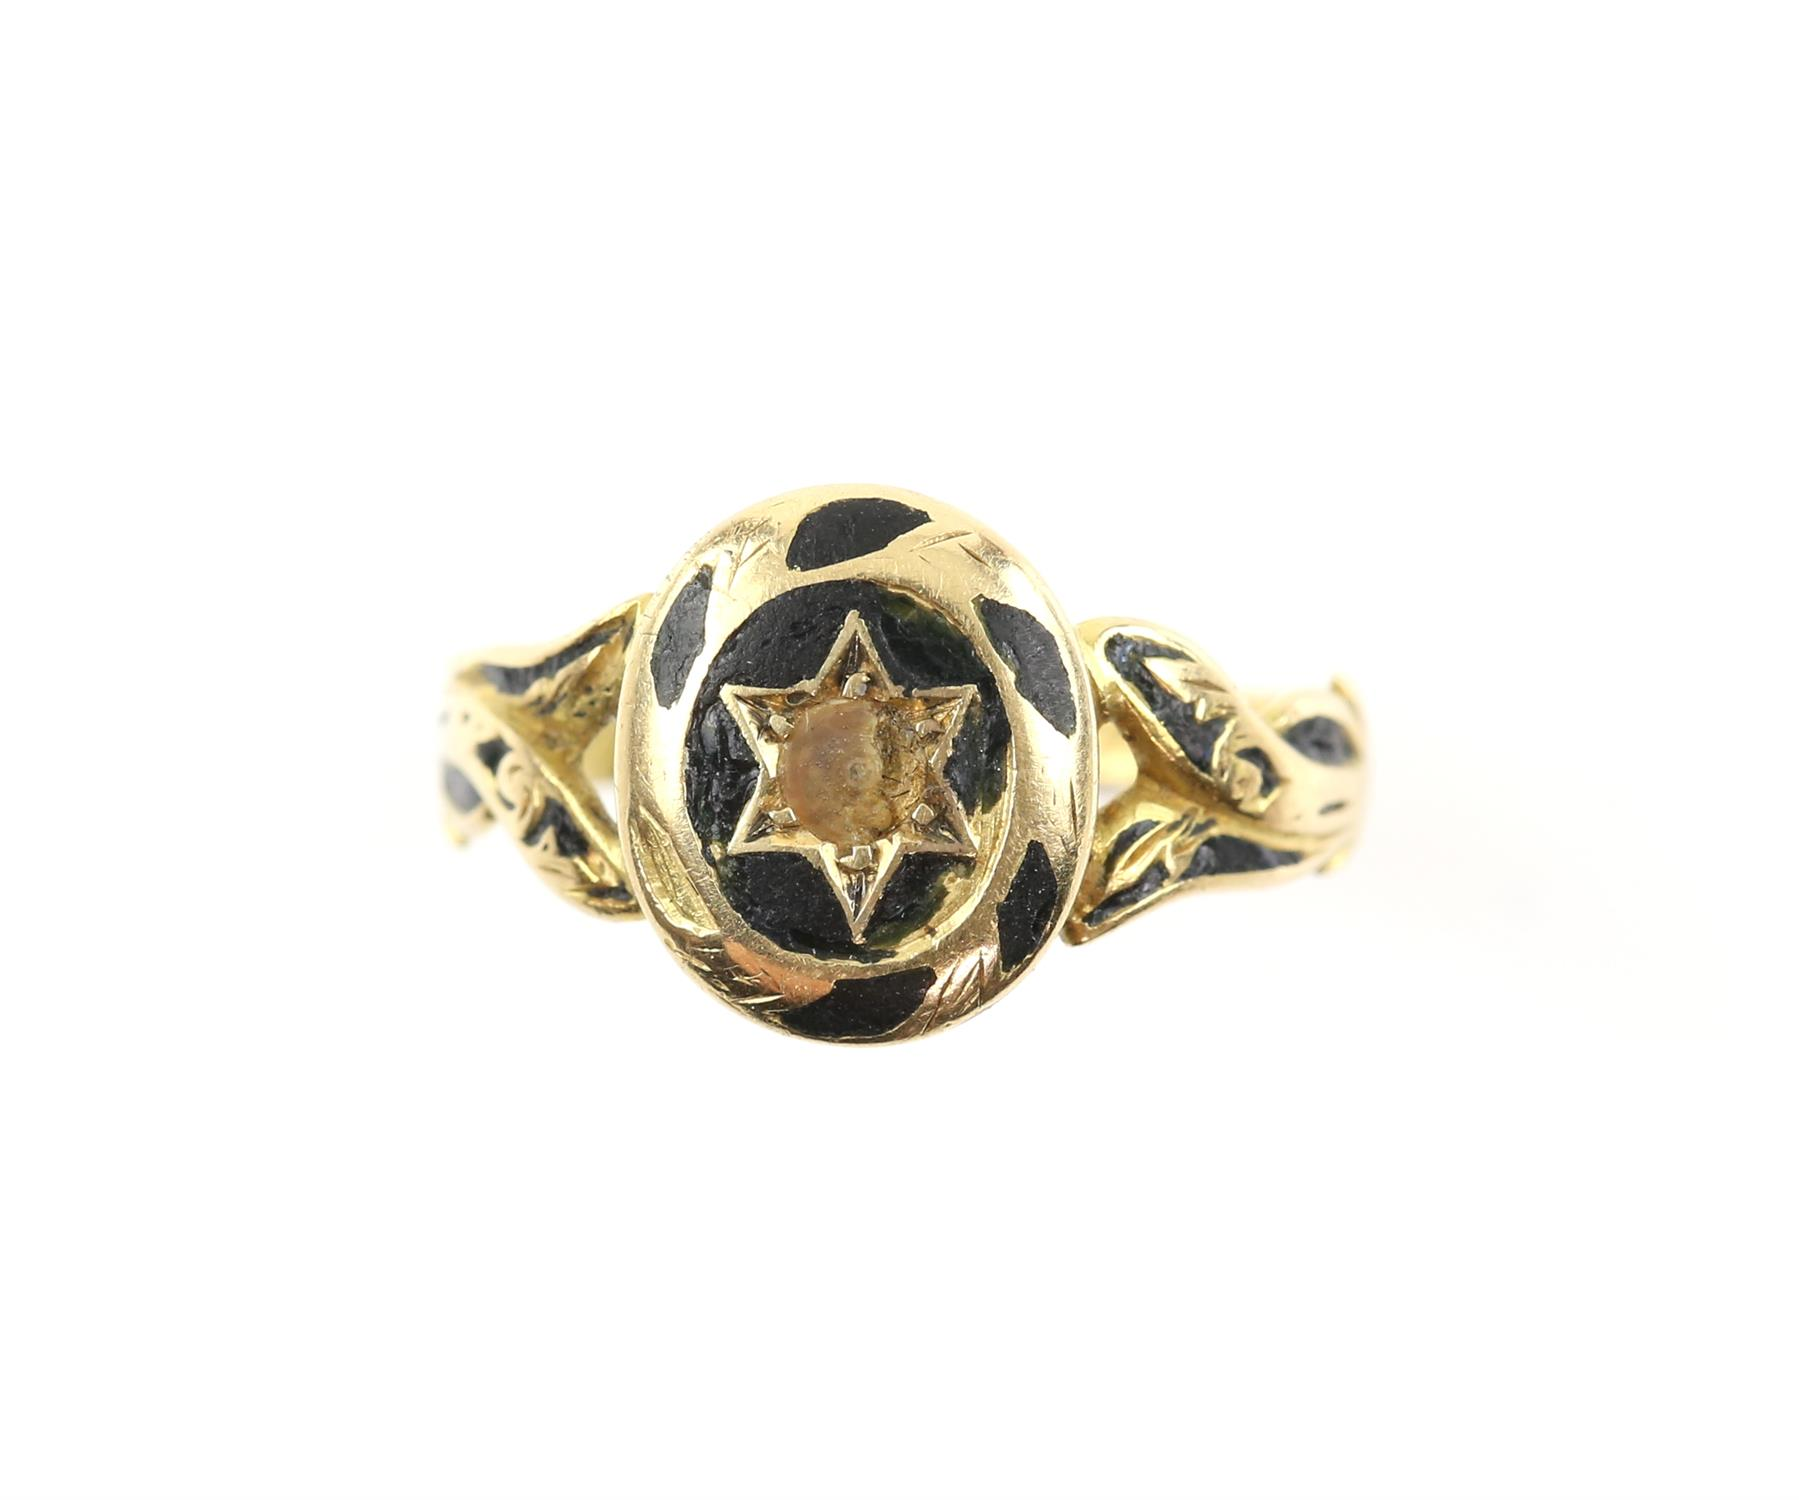 Antique gold and enamel mourning ring, inside band engraved 'Joseph Callaway died Feb 4.1873.